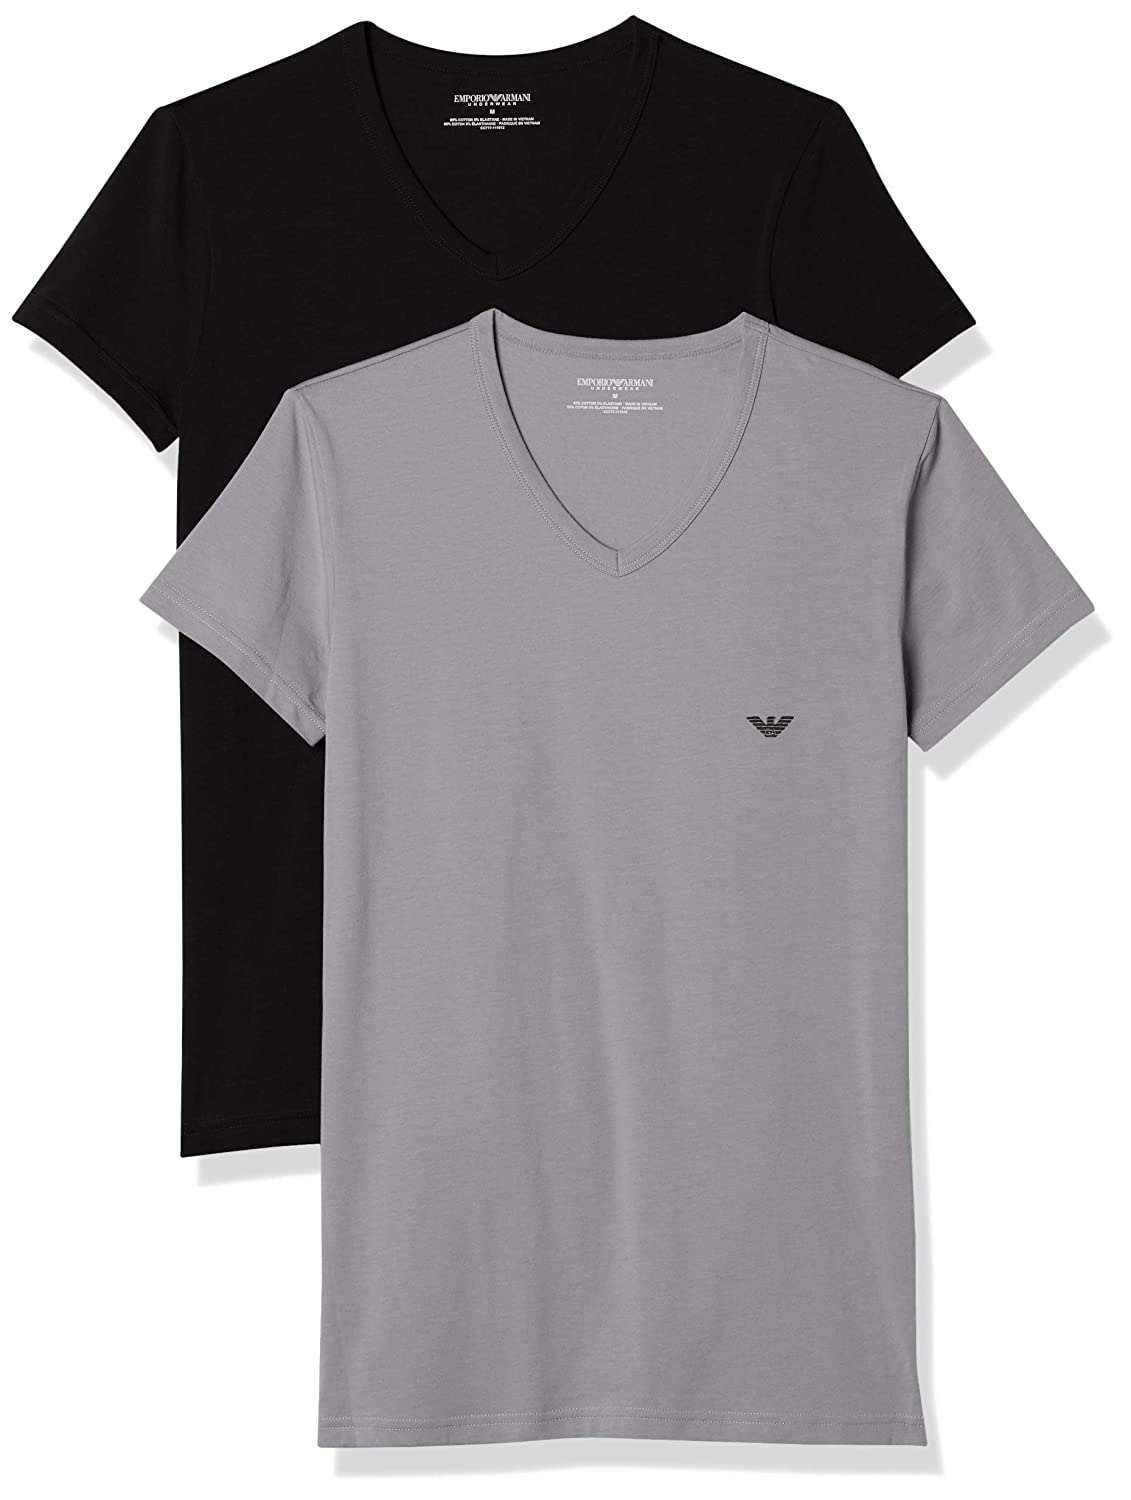 13f5aaccaa Emporio Armani Men's 111512cc717 Short Sleeve T-Shirt,Pack of 2